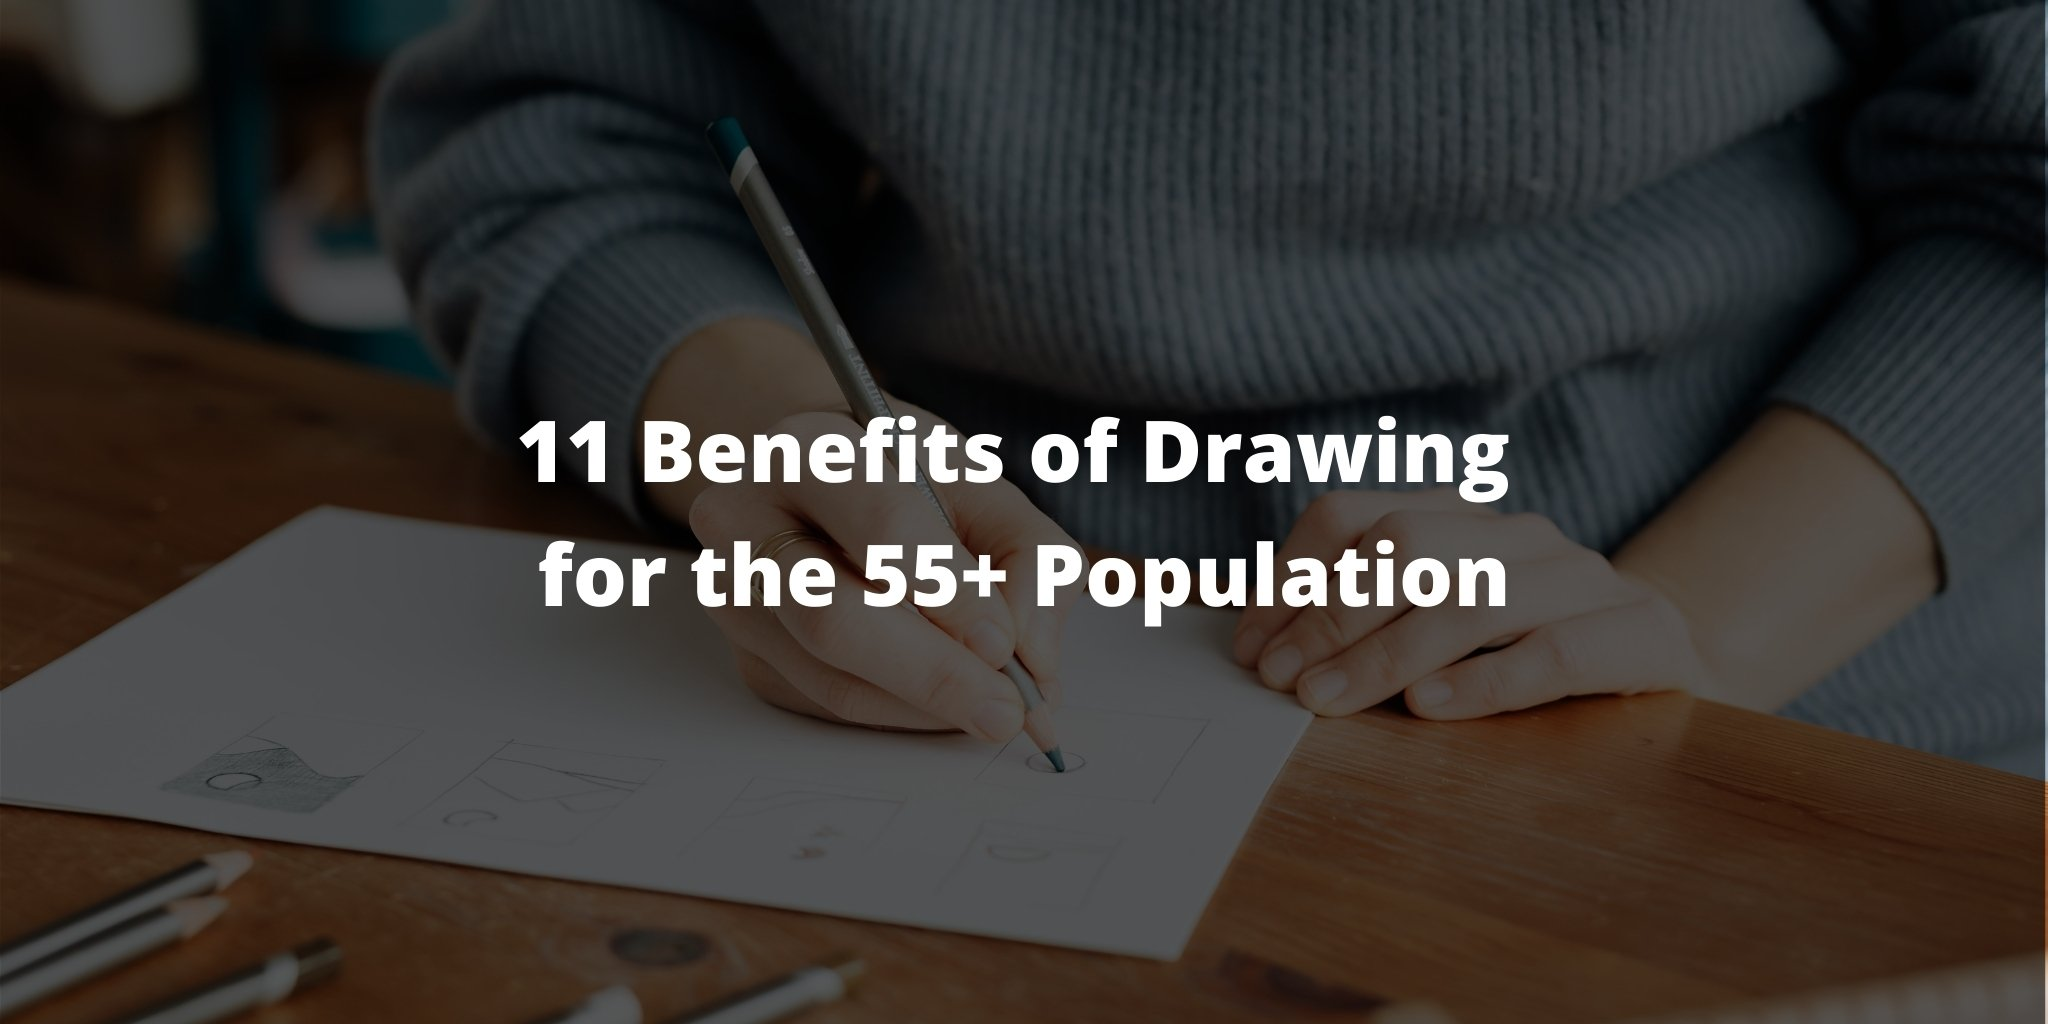 11 Benefits of Drawing for the 55+ Population